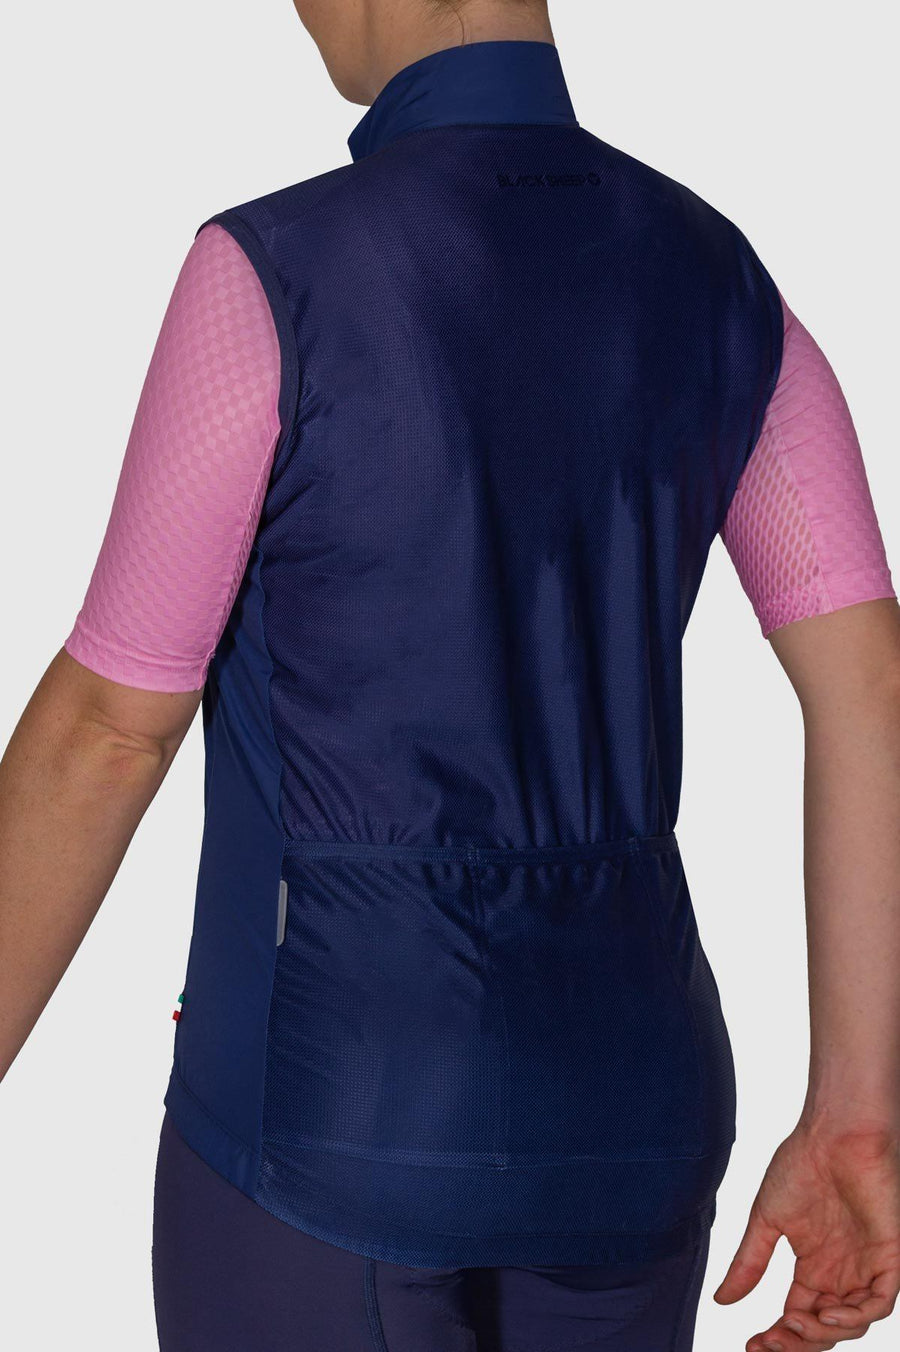 Euro Collection Women's Navy Wind Vest